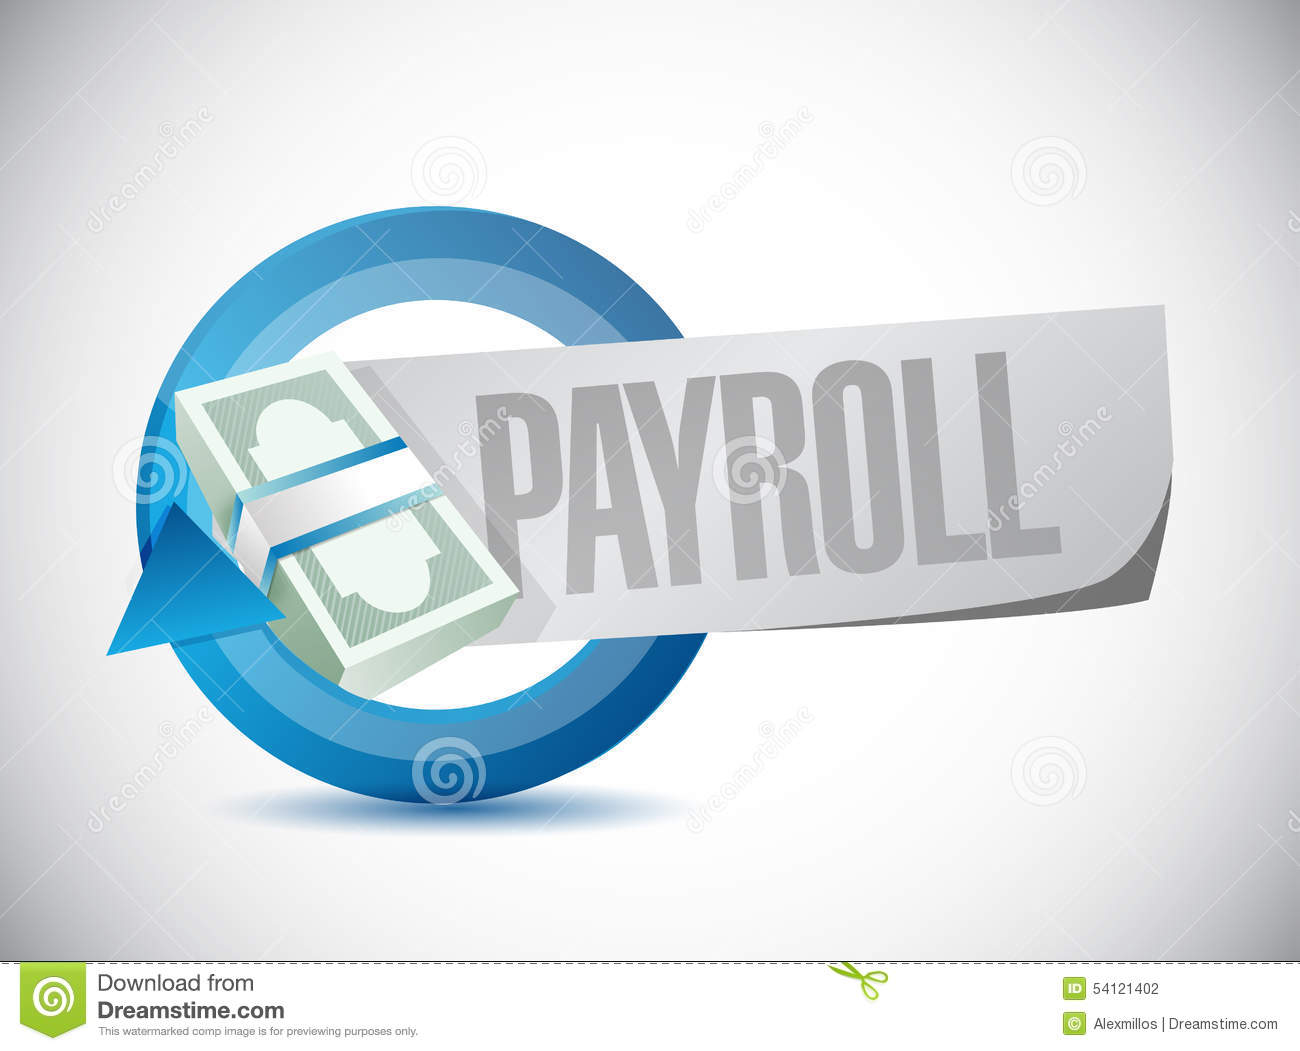 payroll cycle sign concept illustration stock illustration